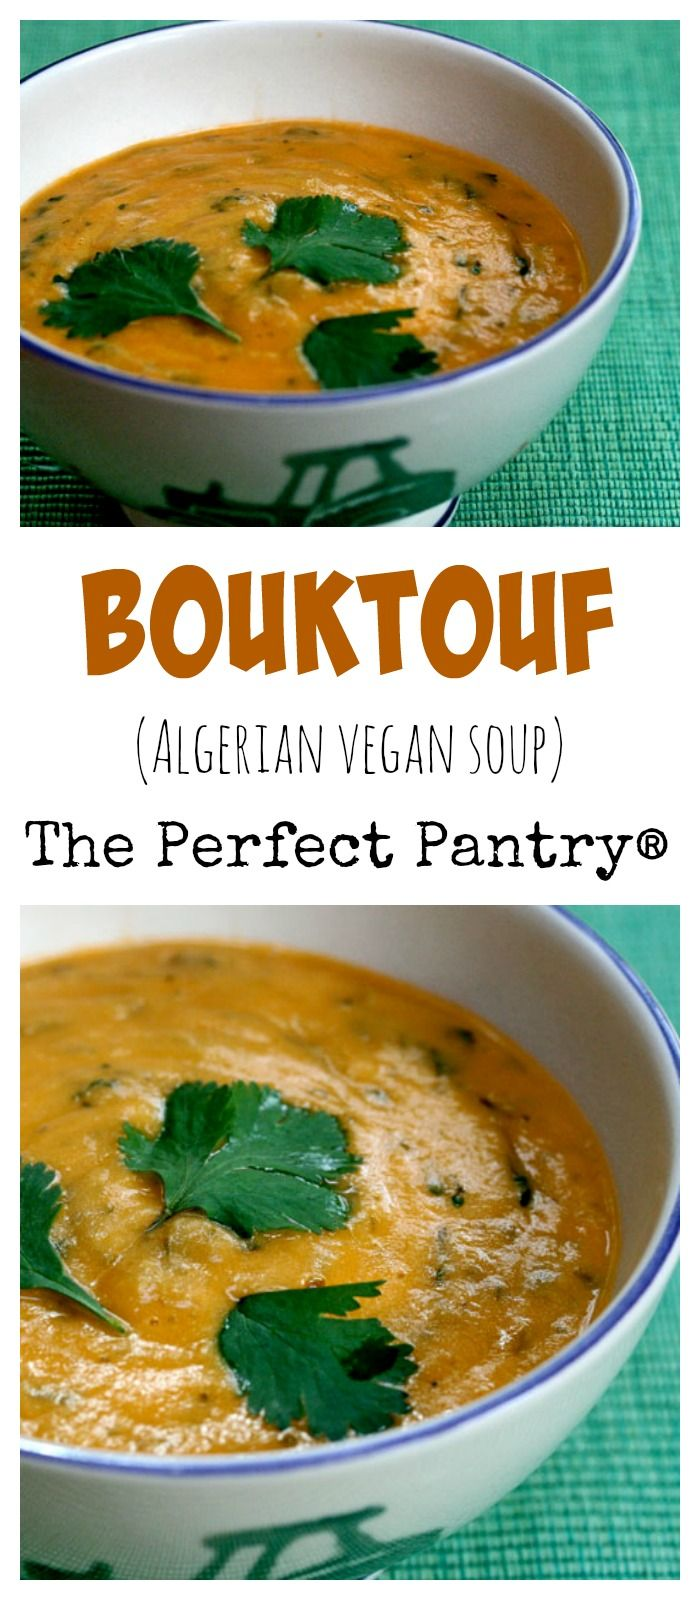 Bouktouf, an Algerian vegetable soup, packs in loads of cilantro. #vegan #meatlessmonday ThePerfectPantry.com